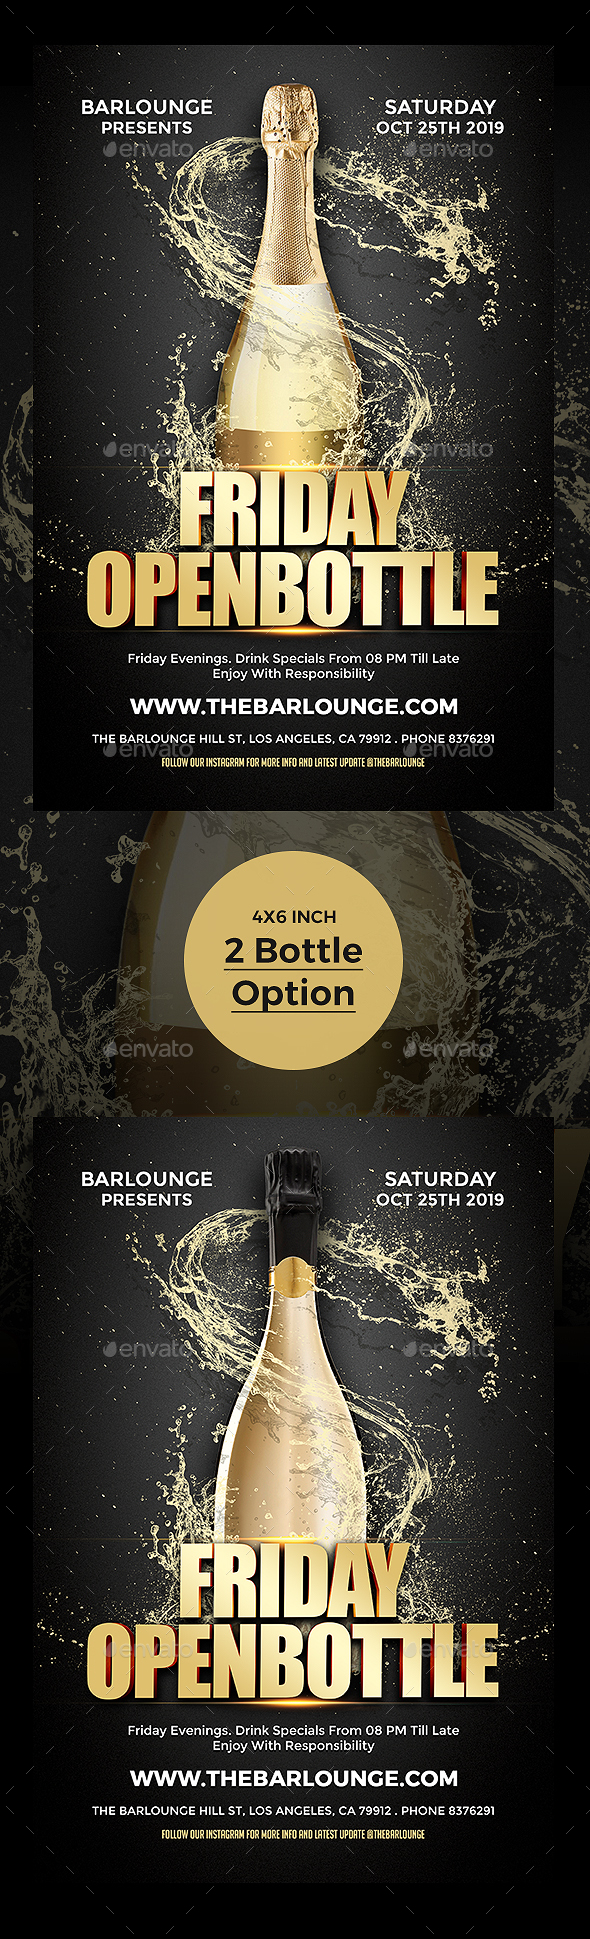 Open Bottle Flyer Poster Template - Clubs & Parties Events